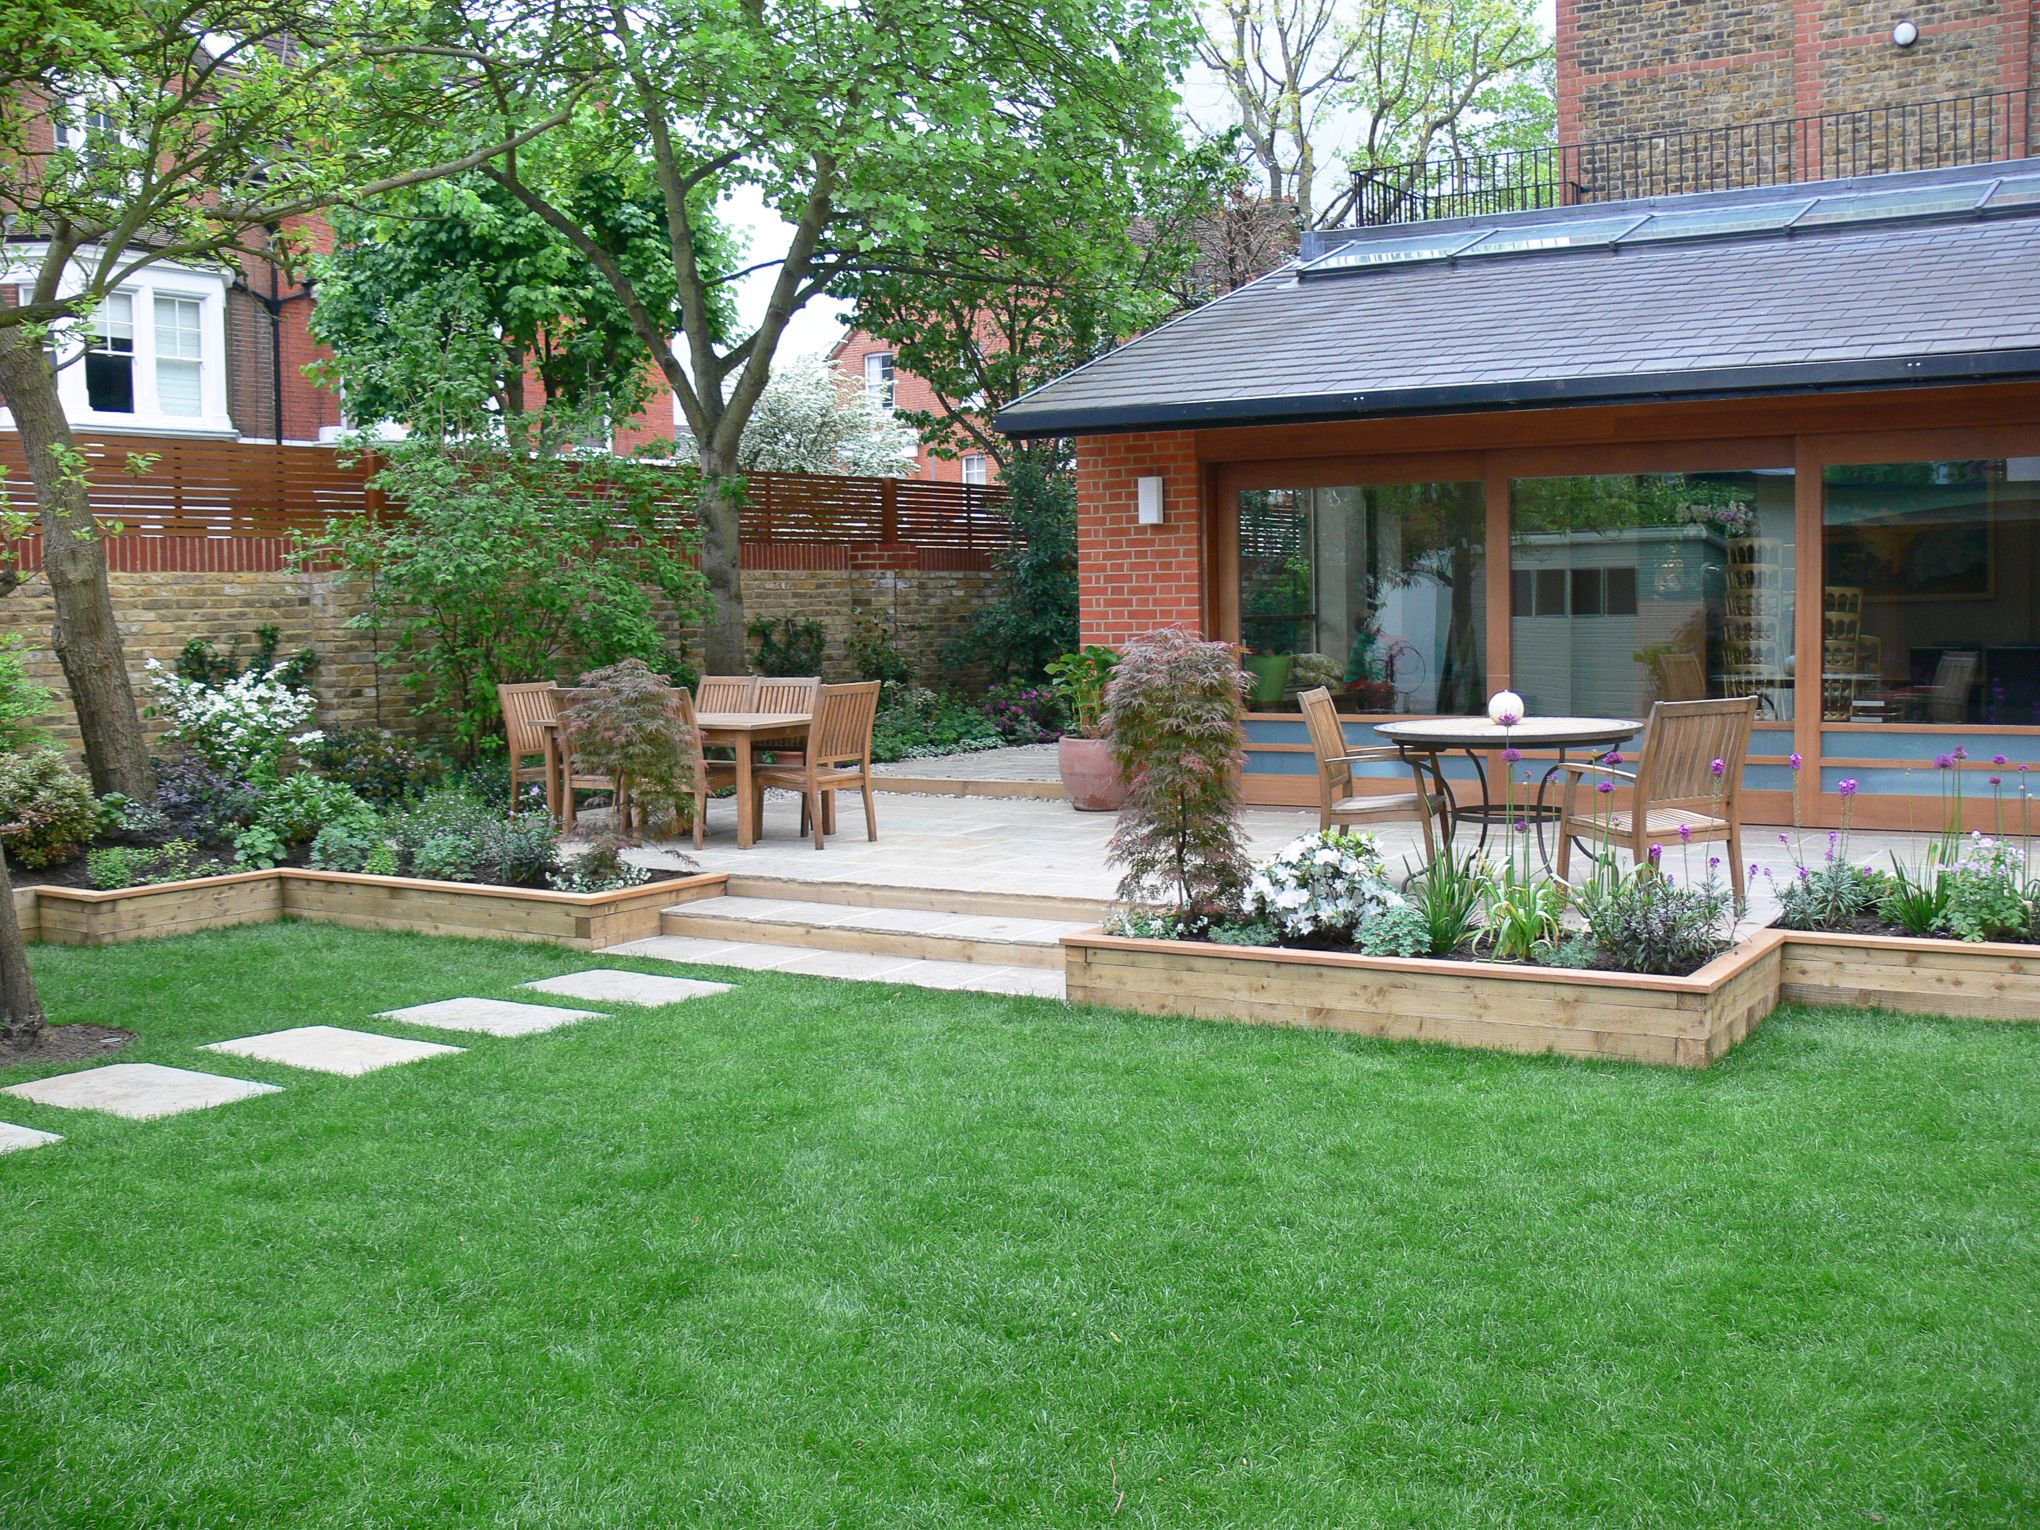 garden with patio raised beds and lawn